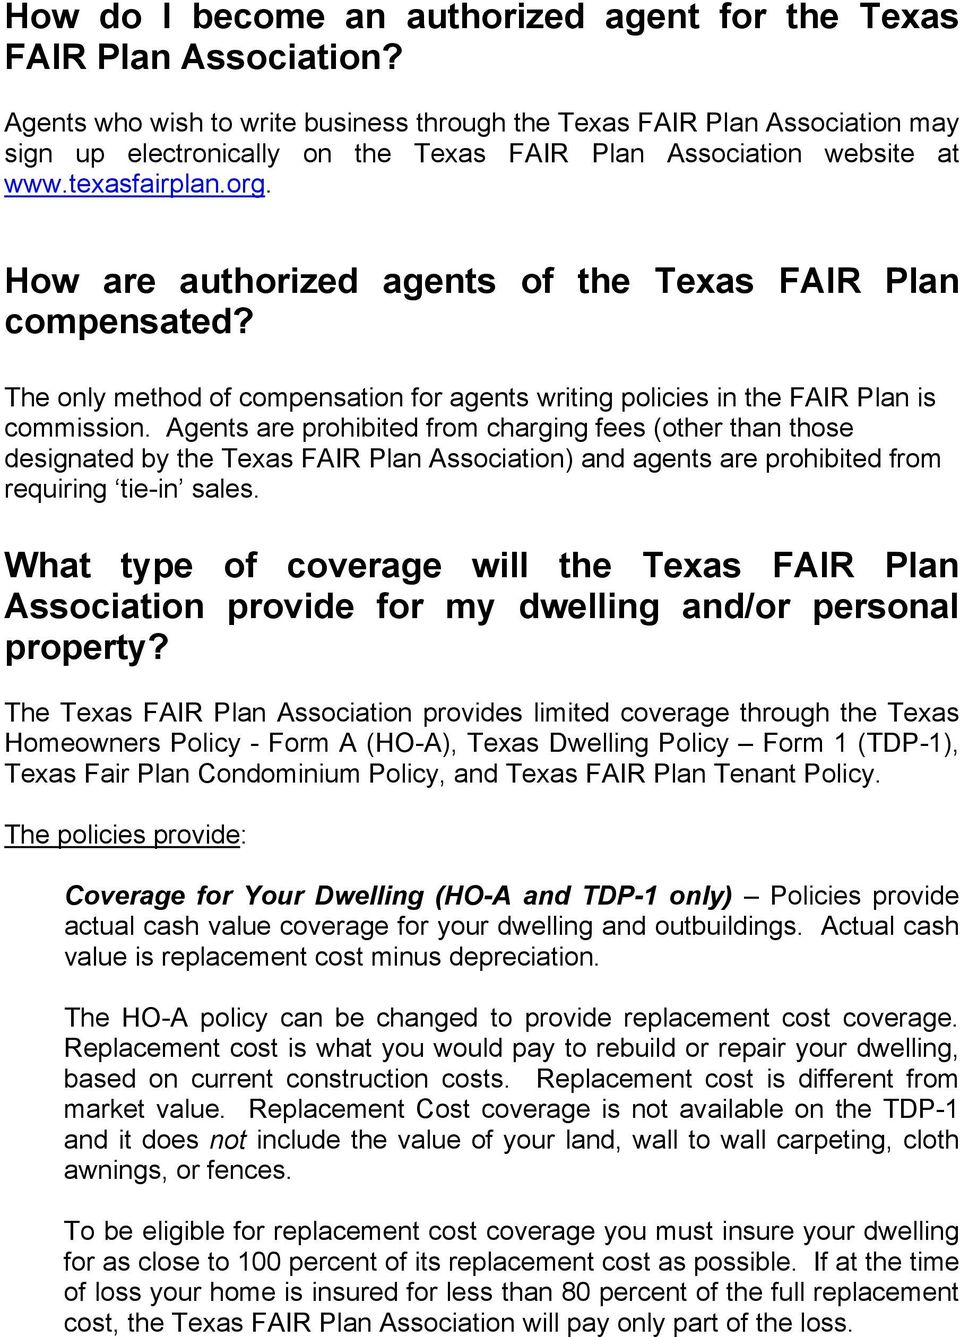 How are authorized agents of the Texas FAIR Plan compensated? The only method of compensation for agents writing policies in the FAIR Plan is commission.